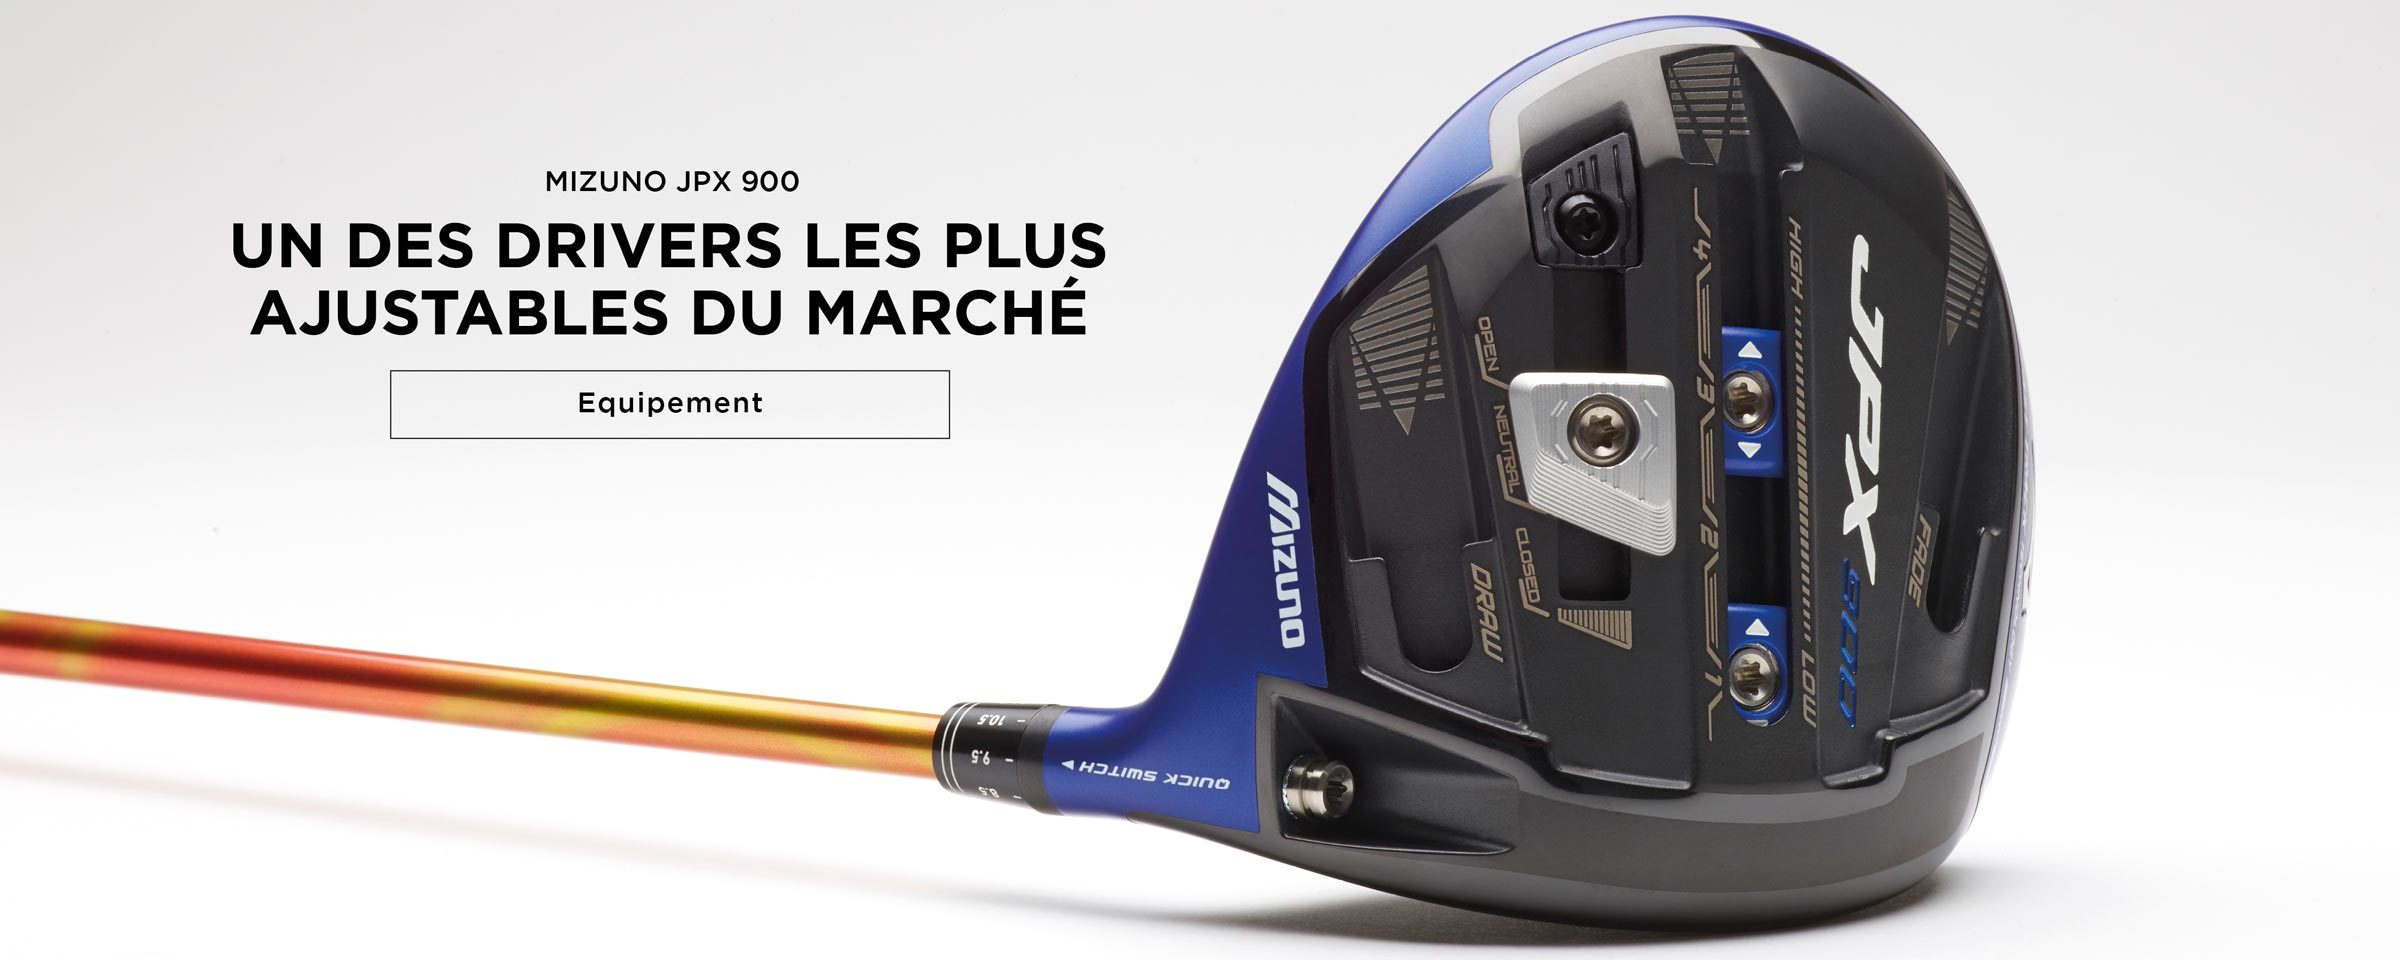 Mizuno, JPX 900. Guide d'achat en 3 points